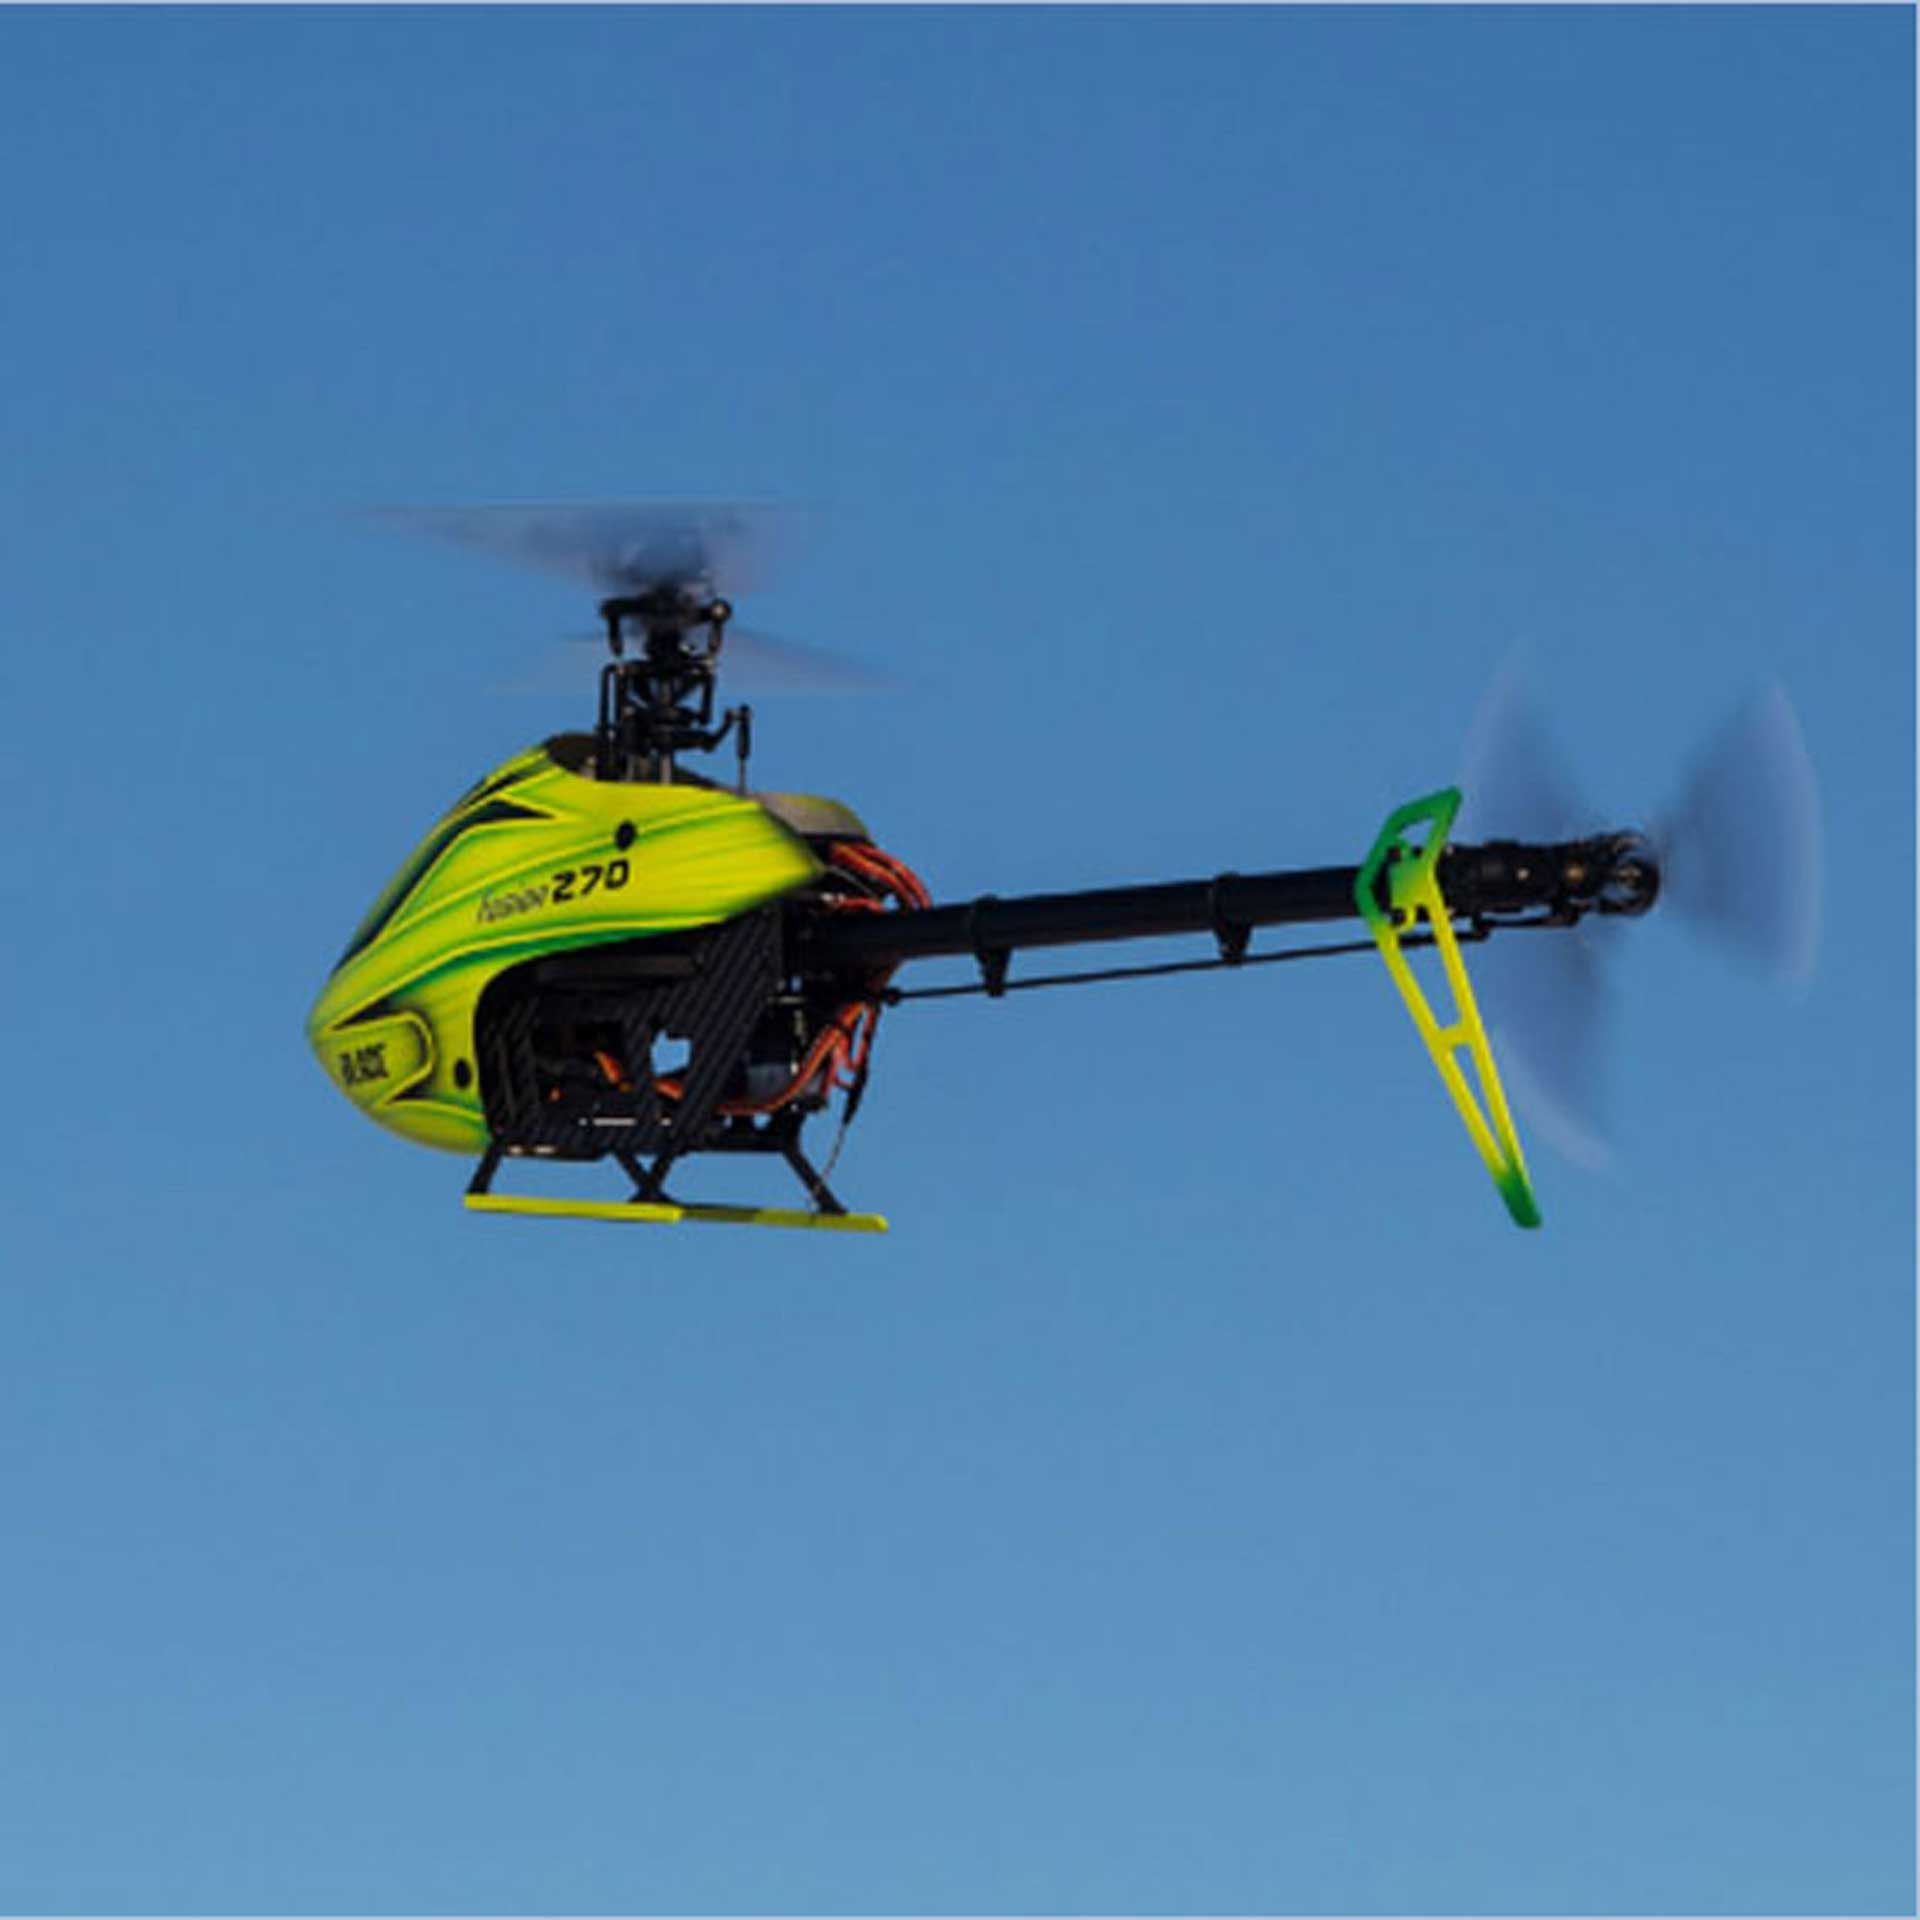 BLADE FUSION 270 BNF BASIC Hubschrauber / Helikopter